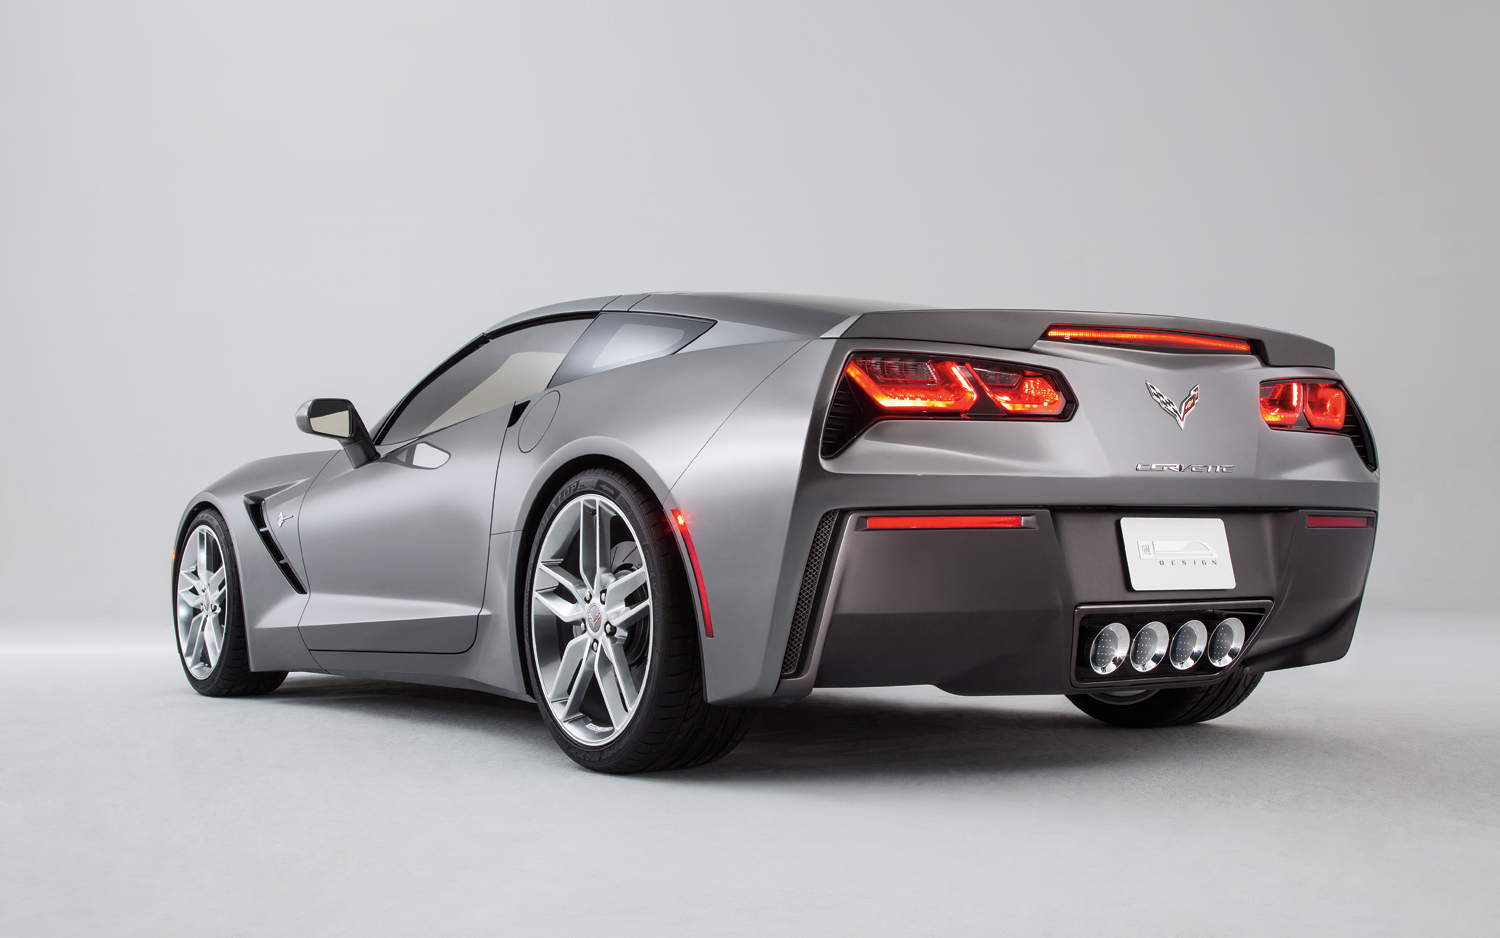 2019 Chevrolet Corvette C7 Stingray photo - 3